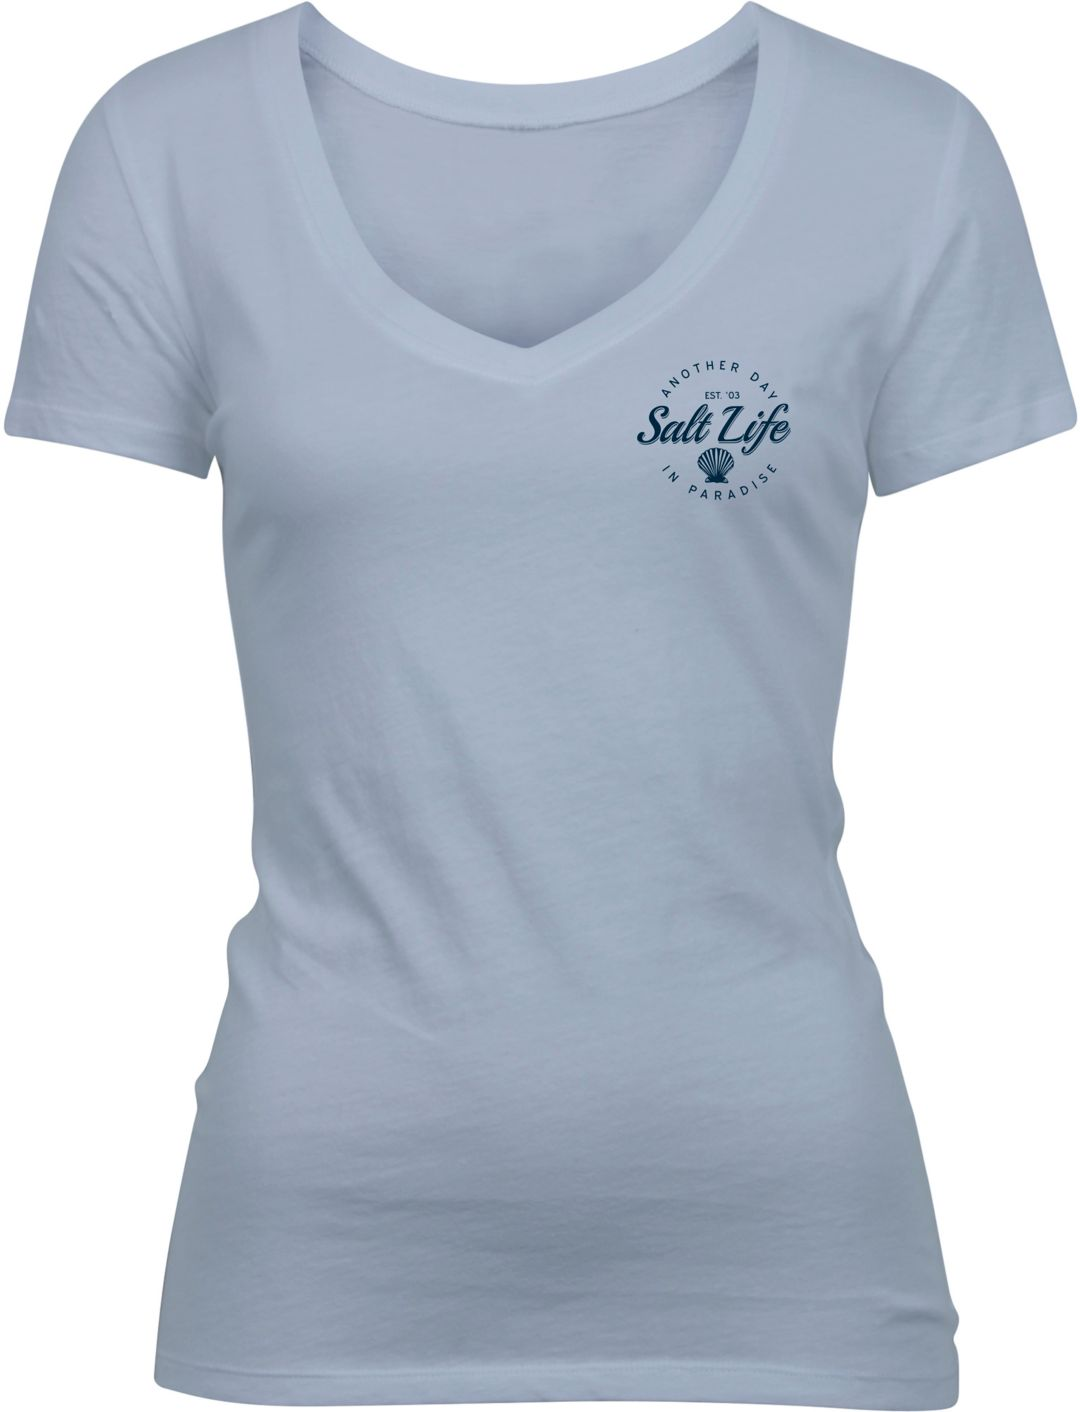 e29c3e1f Salt Life Women's Mermaid Paradise Short Sleeve T-Shirt | Field & Stream